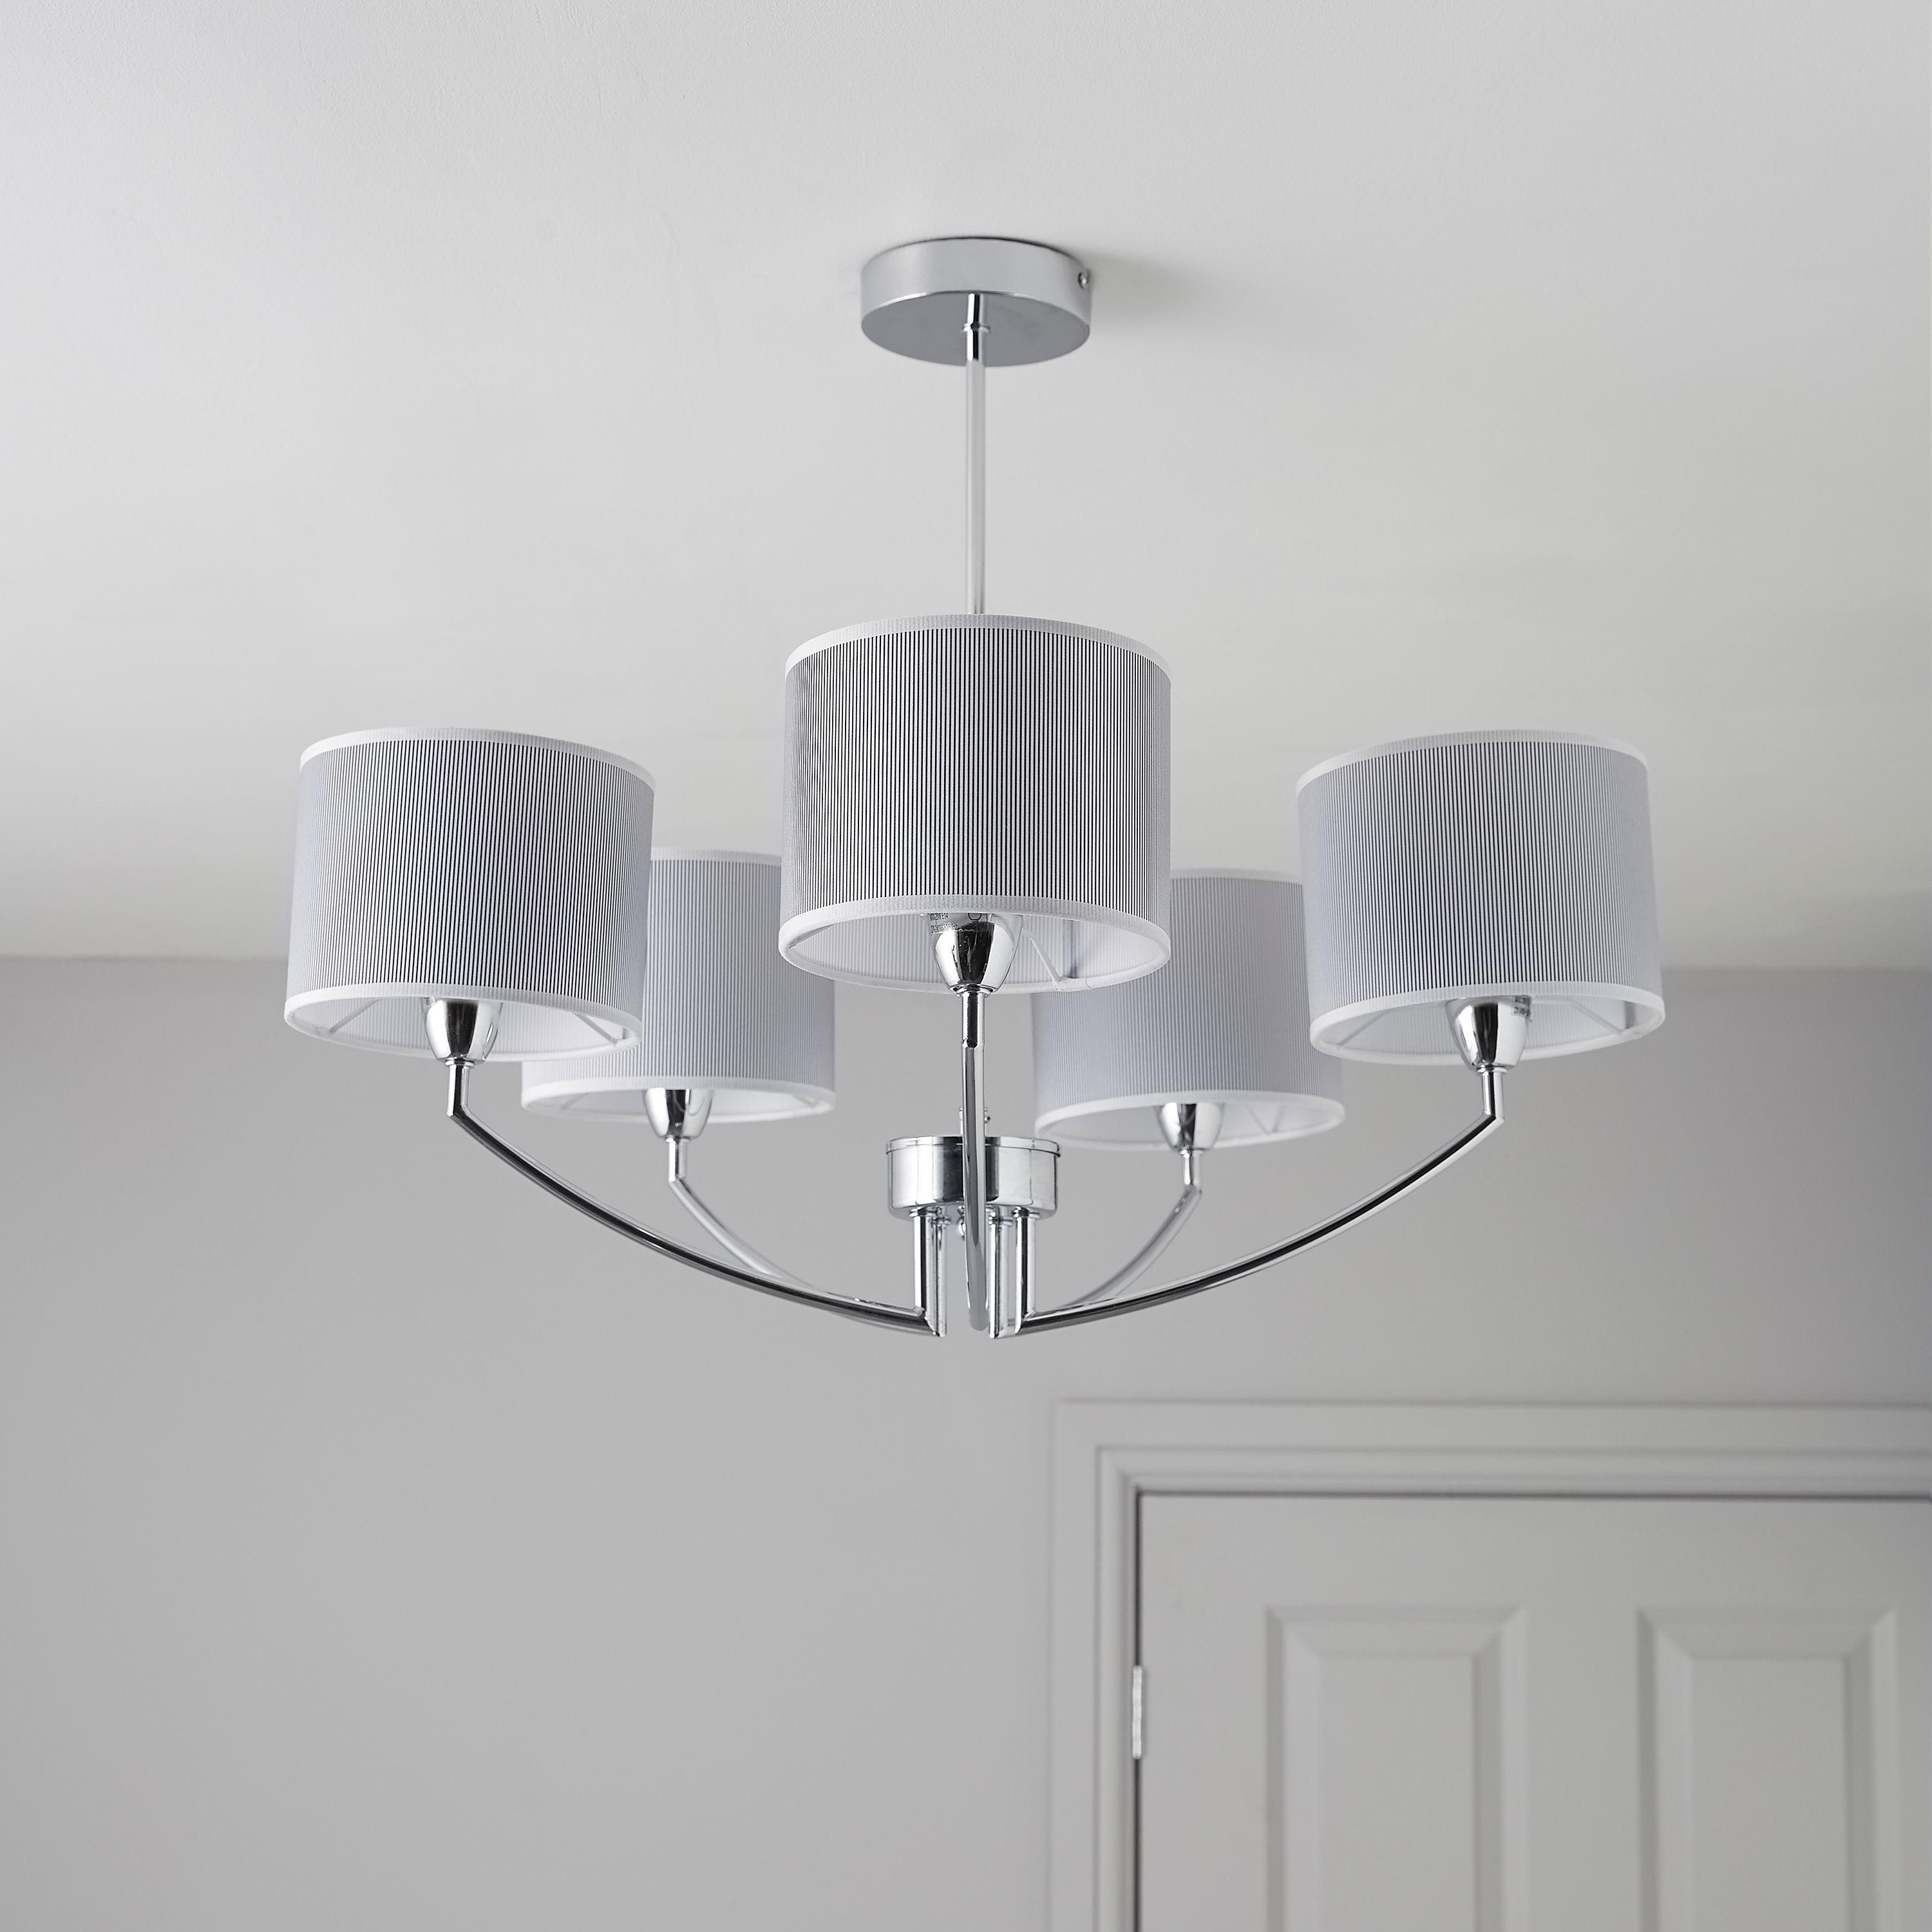 lighting for ceilings. fides shaded grey chrome effect 5 lamp pendant ceiling light lighting for ceilings